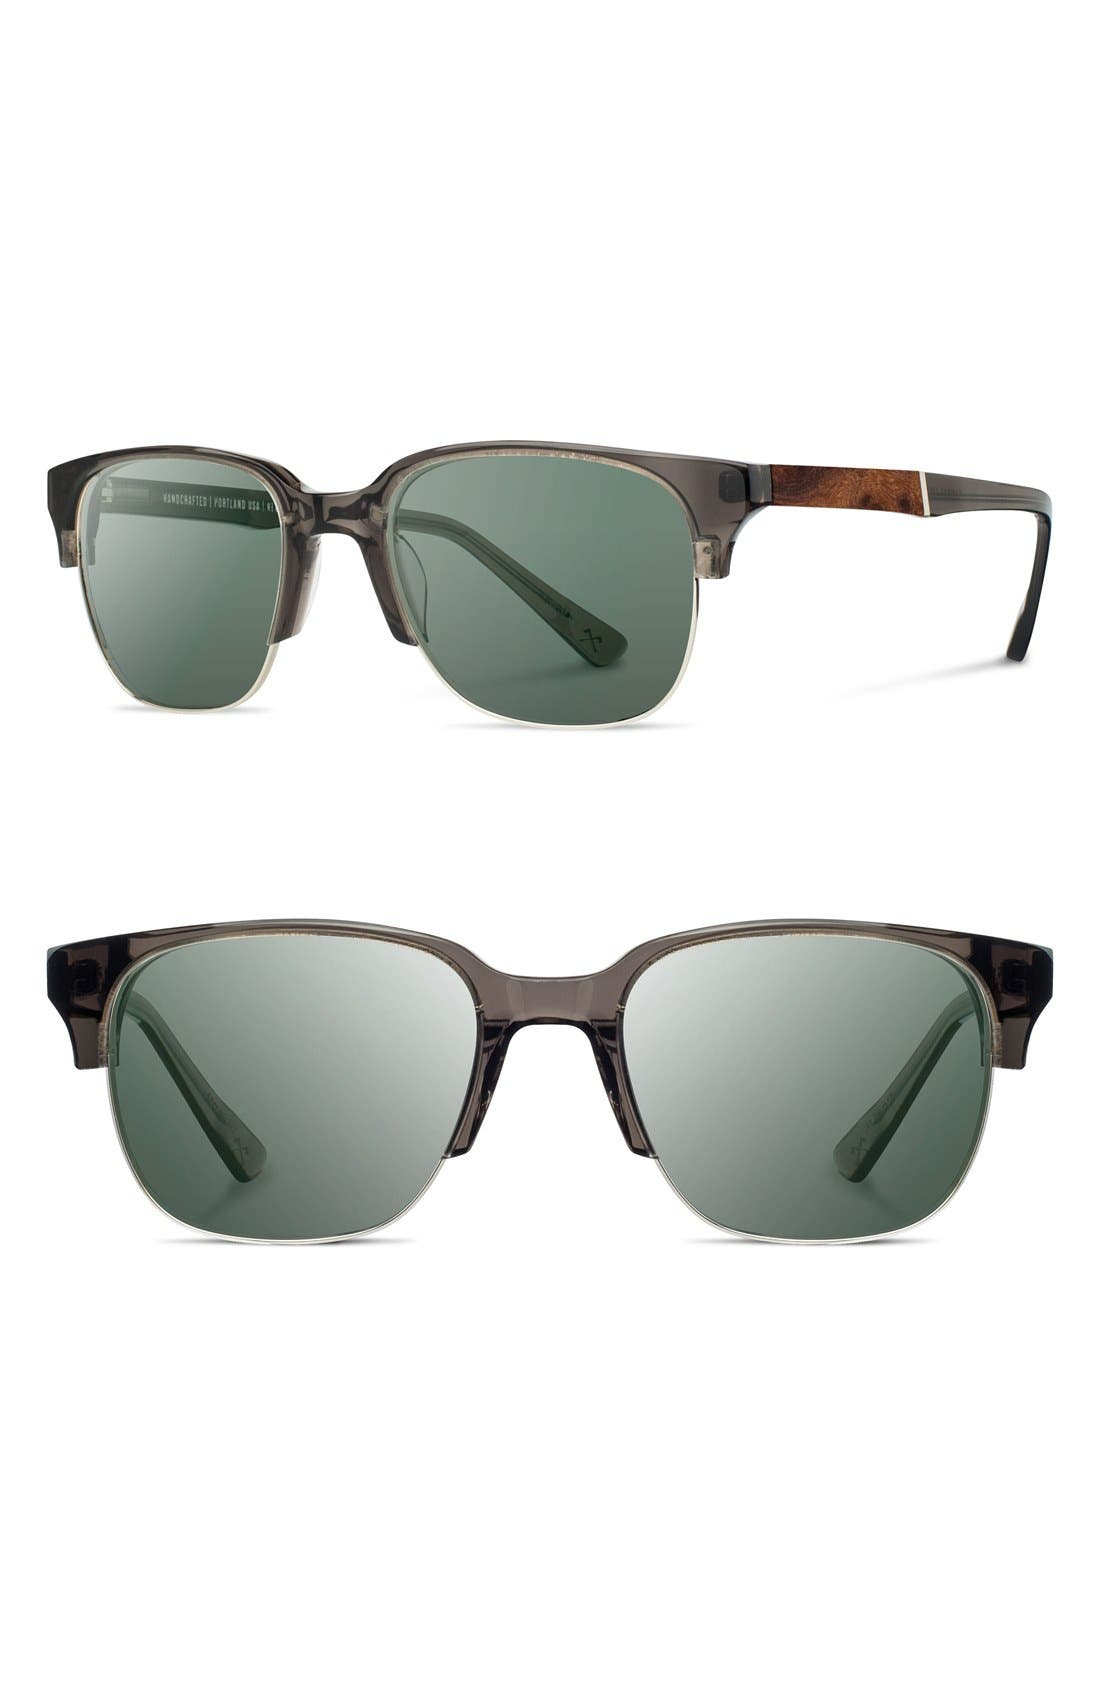 Shwood 'Newport' Sunglasses